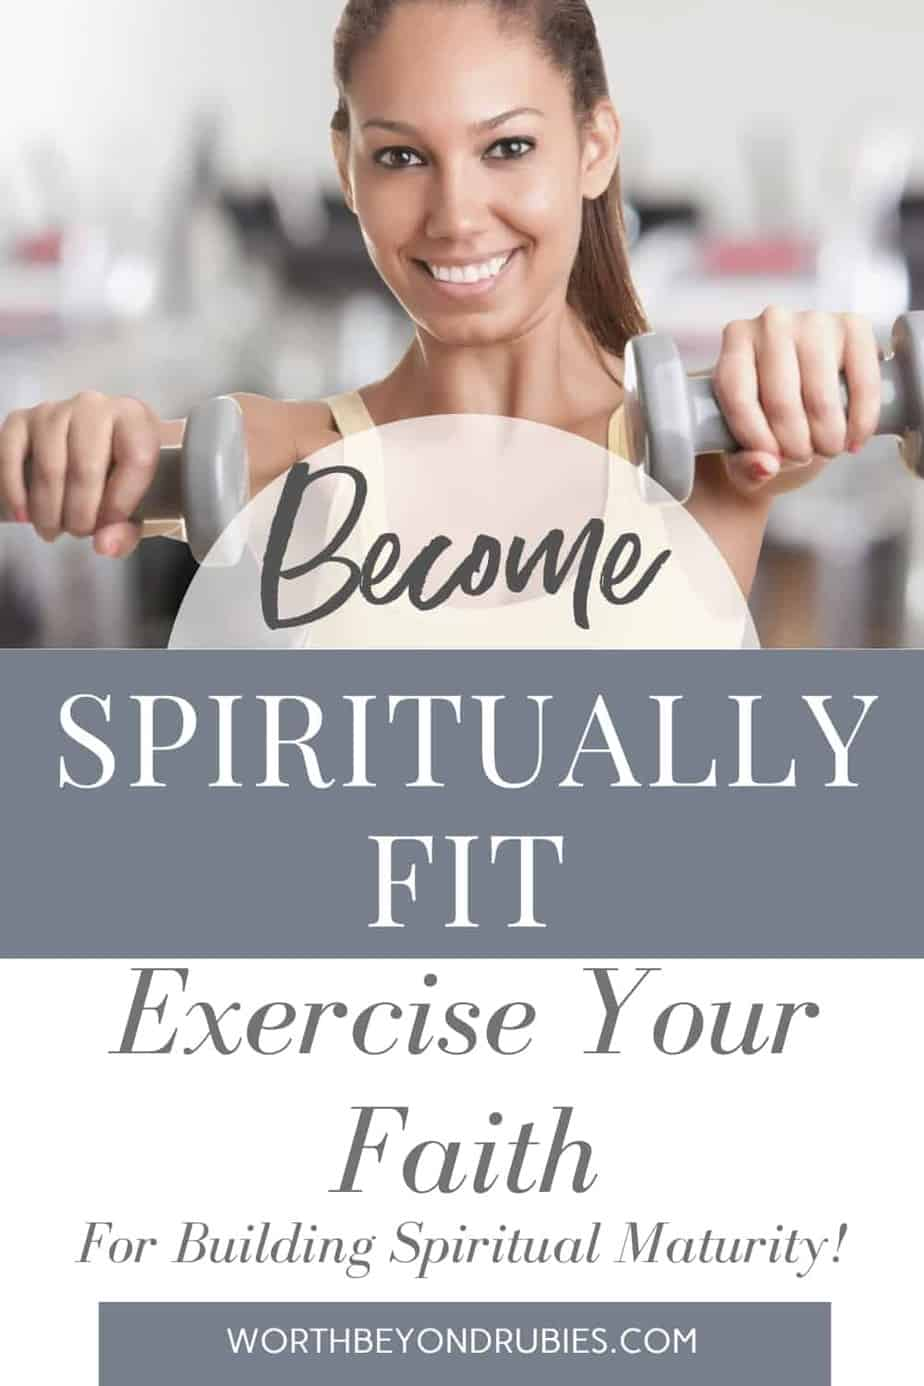 An Image of a darker skinned woman holding two dumbbells up in her hands and she is smiling while facing the camera and a text overlay that says Become Spiritually Fit - Exercise Your Faith For Building Spiritual Maturity